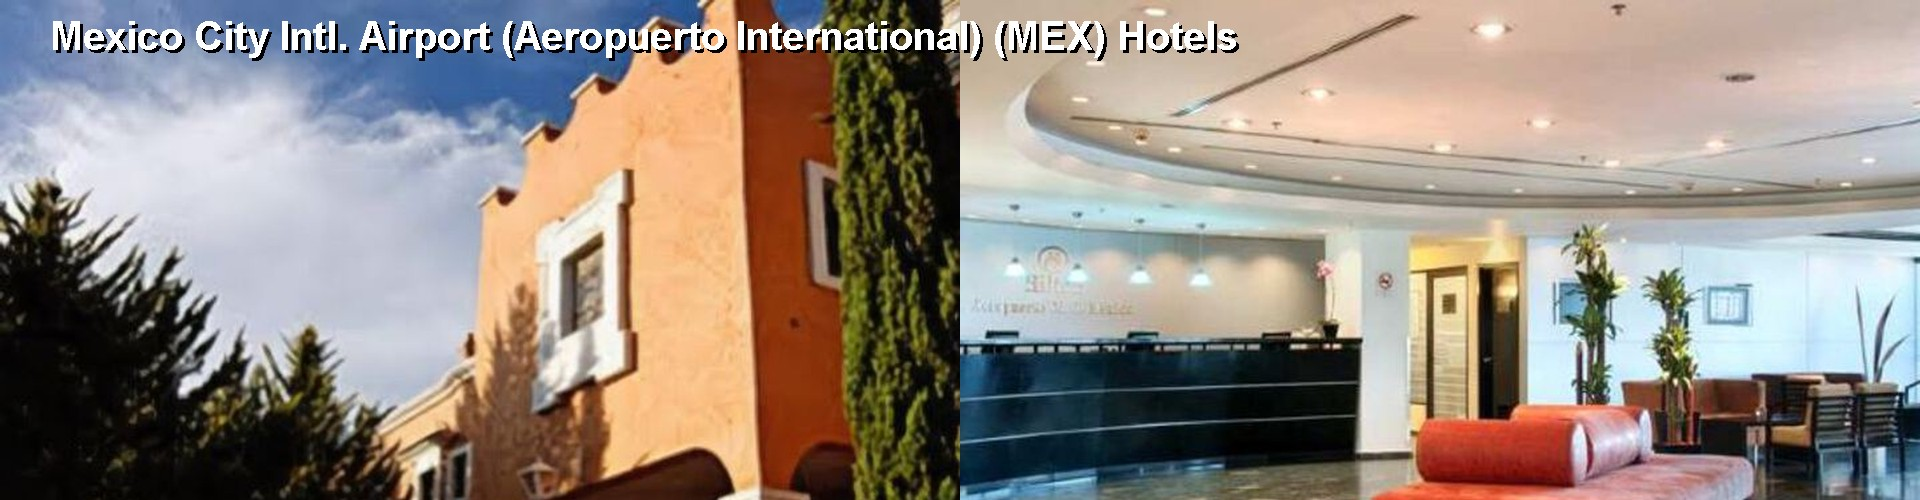 5 Best Hotels near Mexico City Intl. Airport (Aeropuerto International) (MEX)